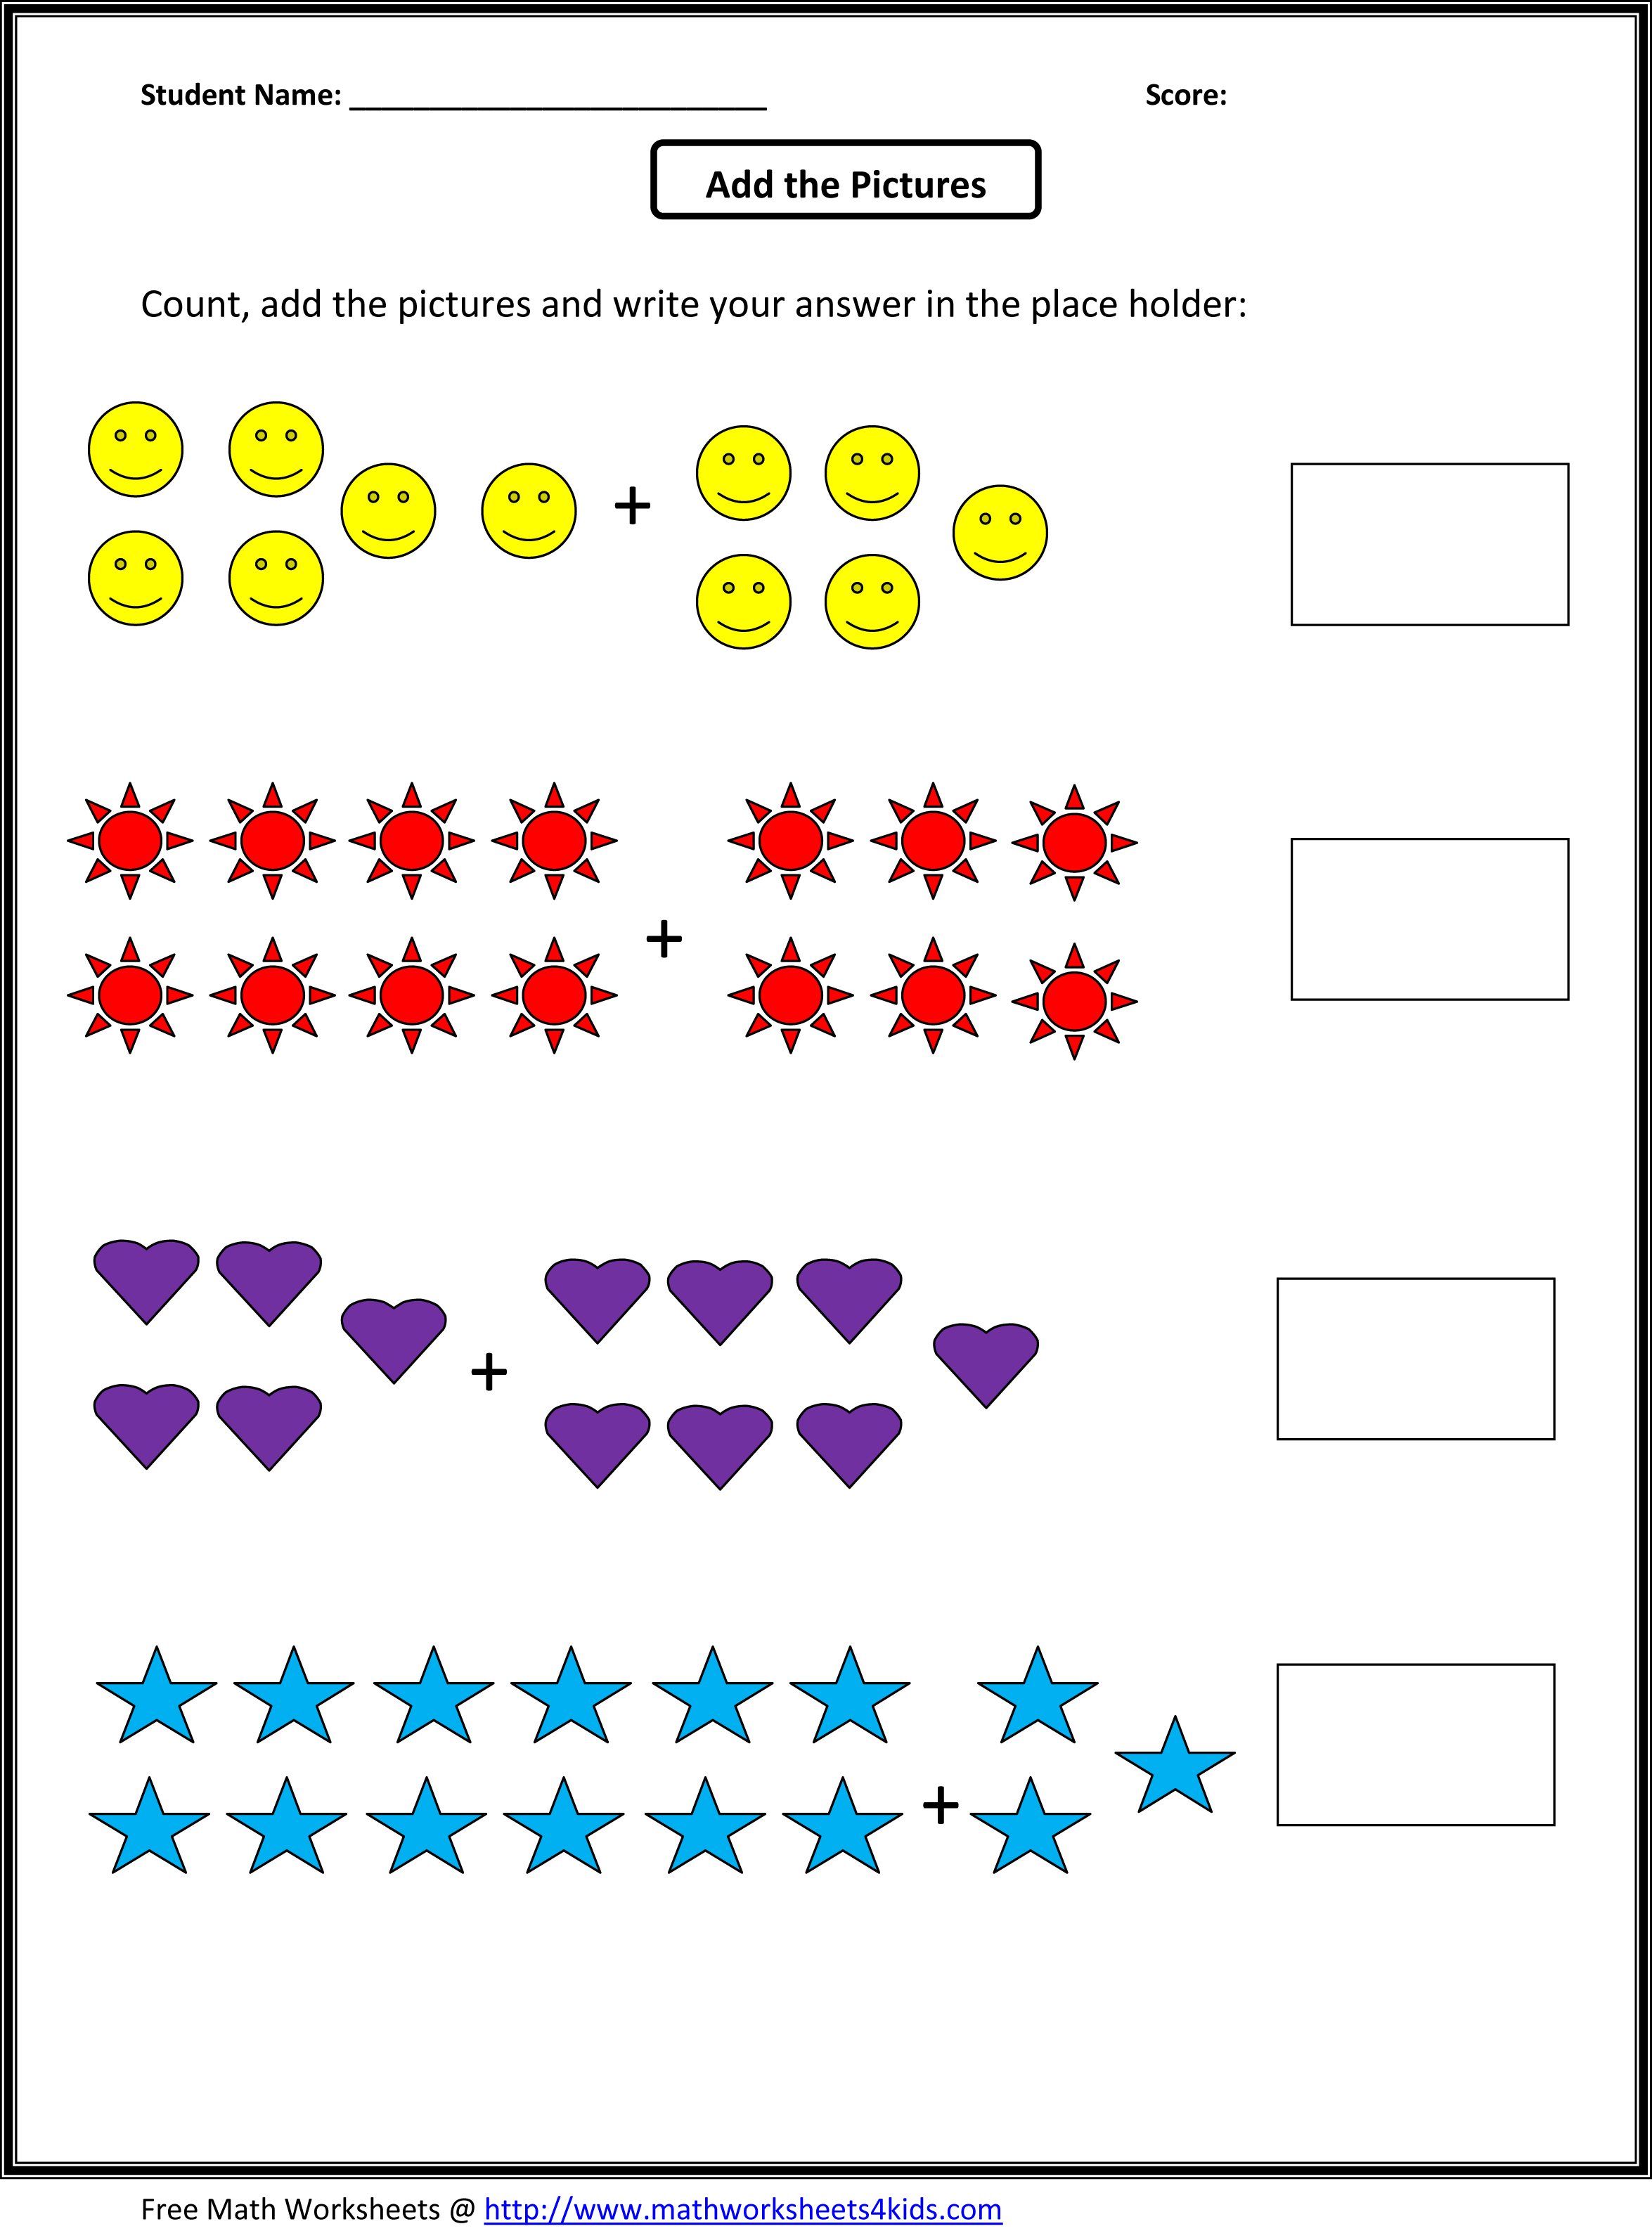 Weirdmailus  Nice Grade  Maths Worksheet  Reocurent With Great Math Worksheets For St Grade Free  Reocurent With Breathtaking Composite And Prime Number Worksheets Also English Worksheets For Class  In Addition Worksheet For Time And Worksheets For Grade  As Well As Moment Of Force Worksheet Additionally Subject Verb Agreement Worksheets Grade  From Reocurentcom With Weirdmailus  Great Grade  Maths Worksheet  Reocurent With Breathtaking Math Worksheets For St Grade Free  Reocurent And Nice Composite And Prime Number Worksheets Also English Worksheets For Class  In Addition Worksheet For Time From Reocurentcom